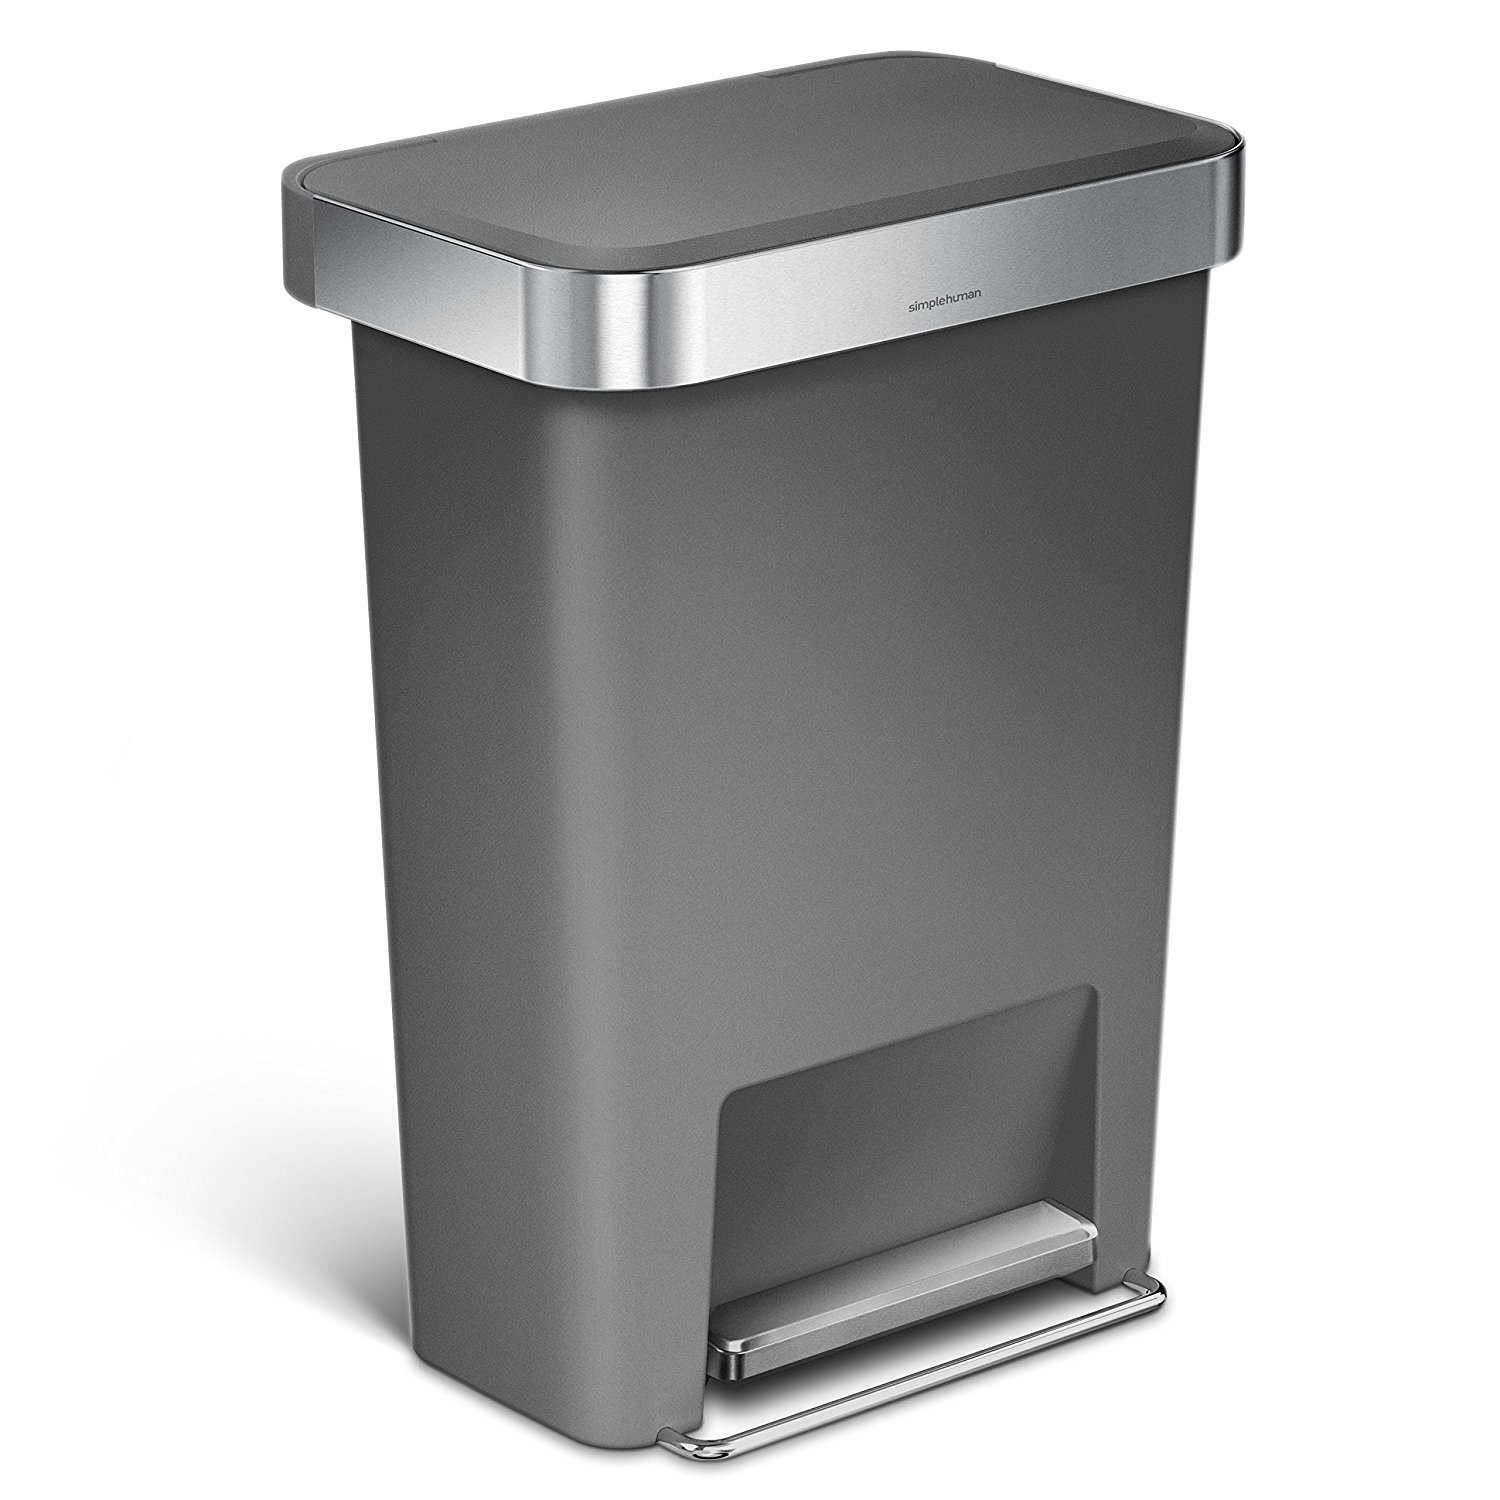 Exceptionnel Simplehuman 45 Liter/12 Gallon Rectangular Kitchen Step Trash Can With  Liner Pocket, Grey